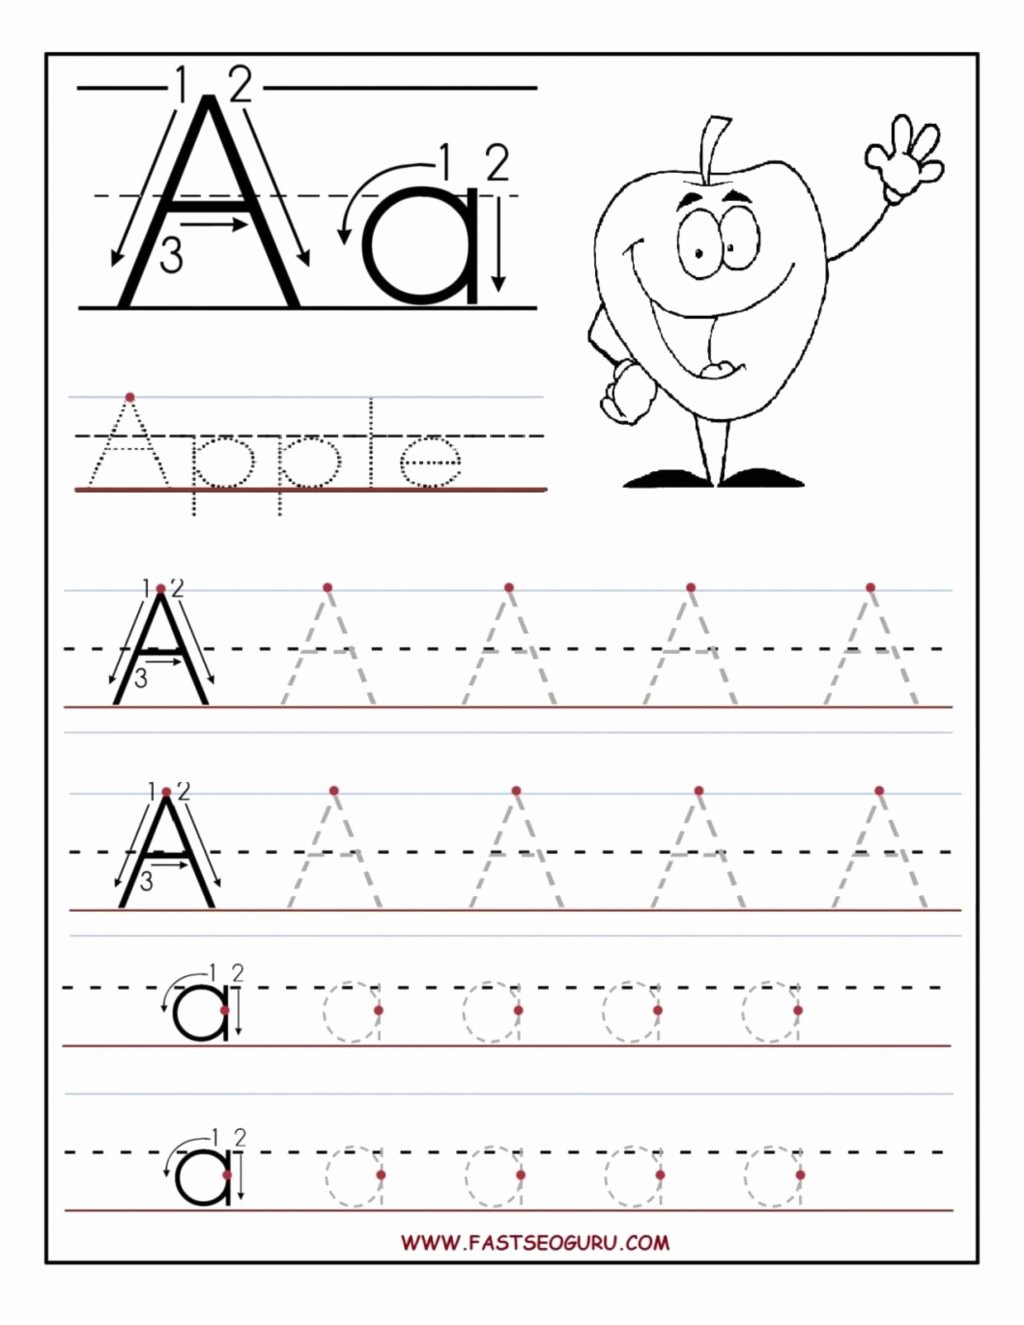 Free Tracing Worksheets for Preschoolers Letters Kids Worksheet Worksheet Trace Letters Tracing Worksheets for